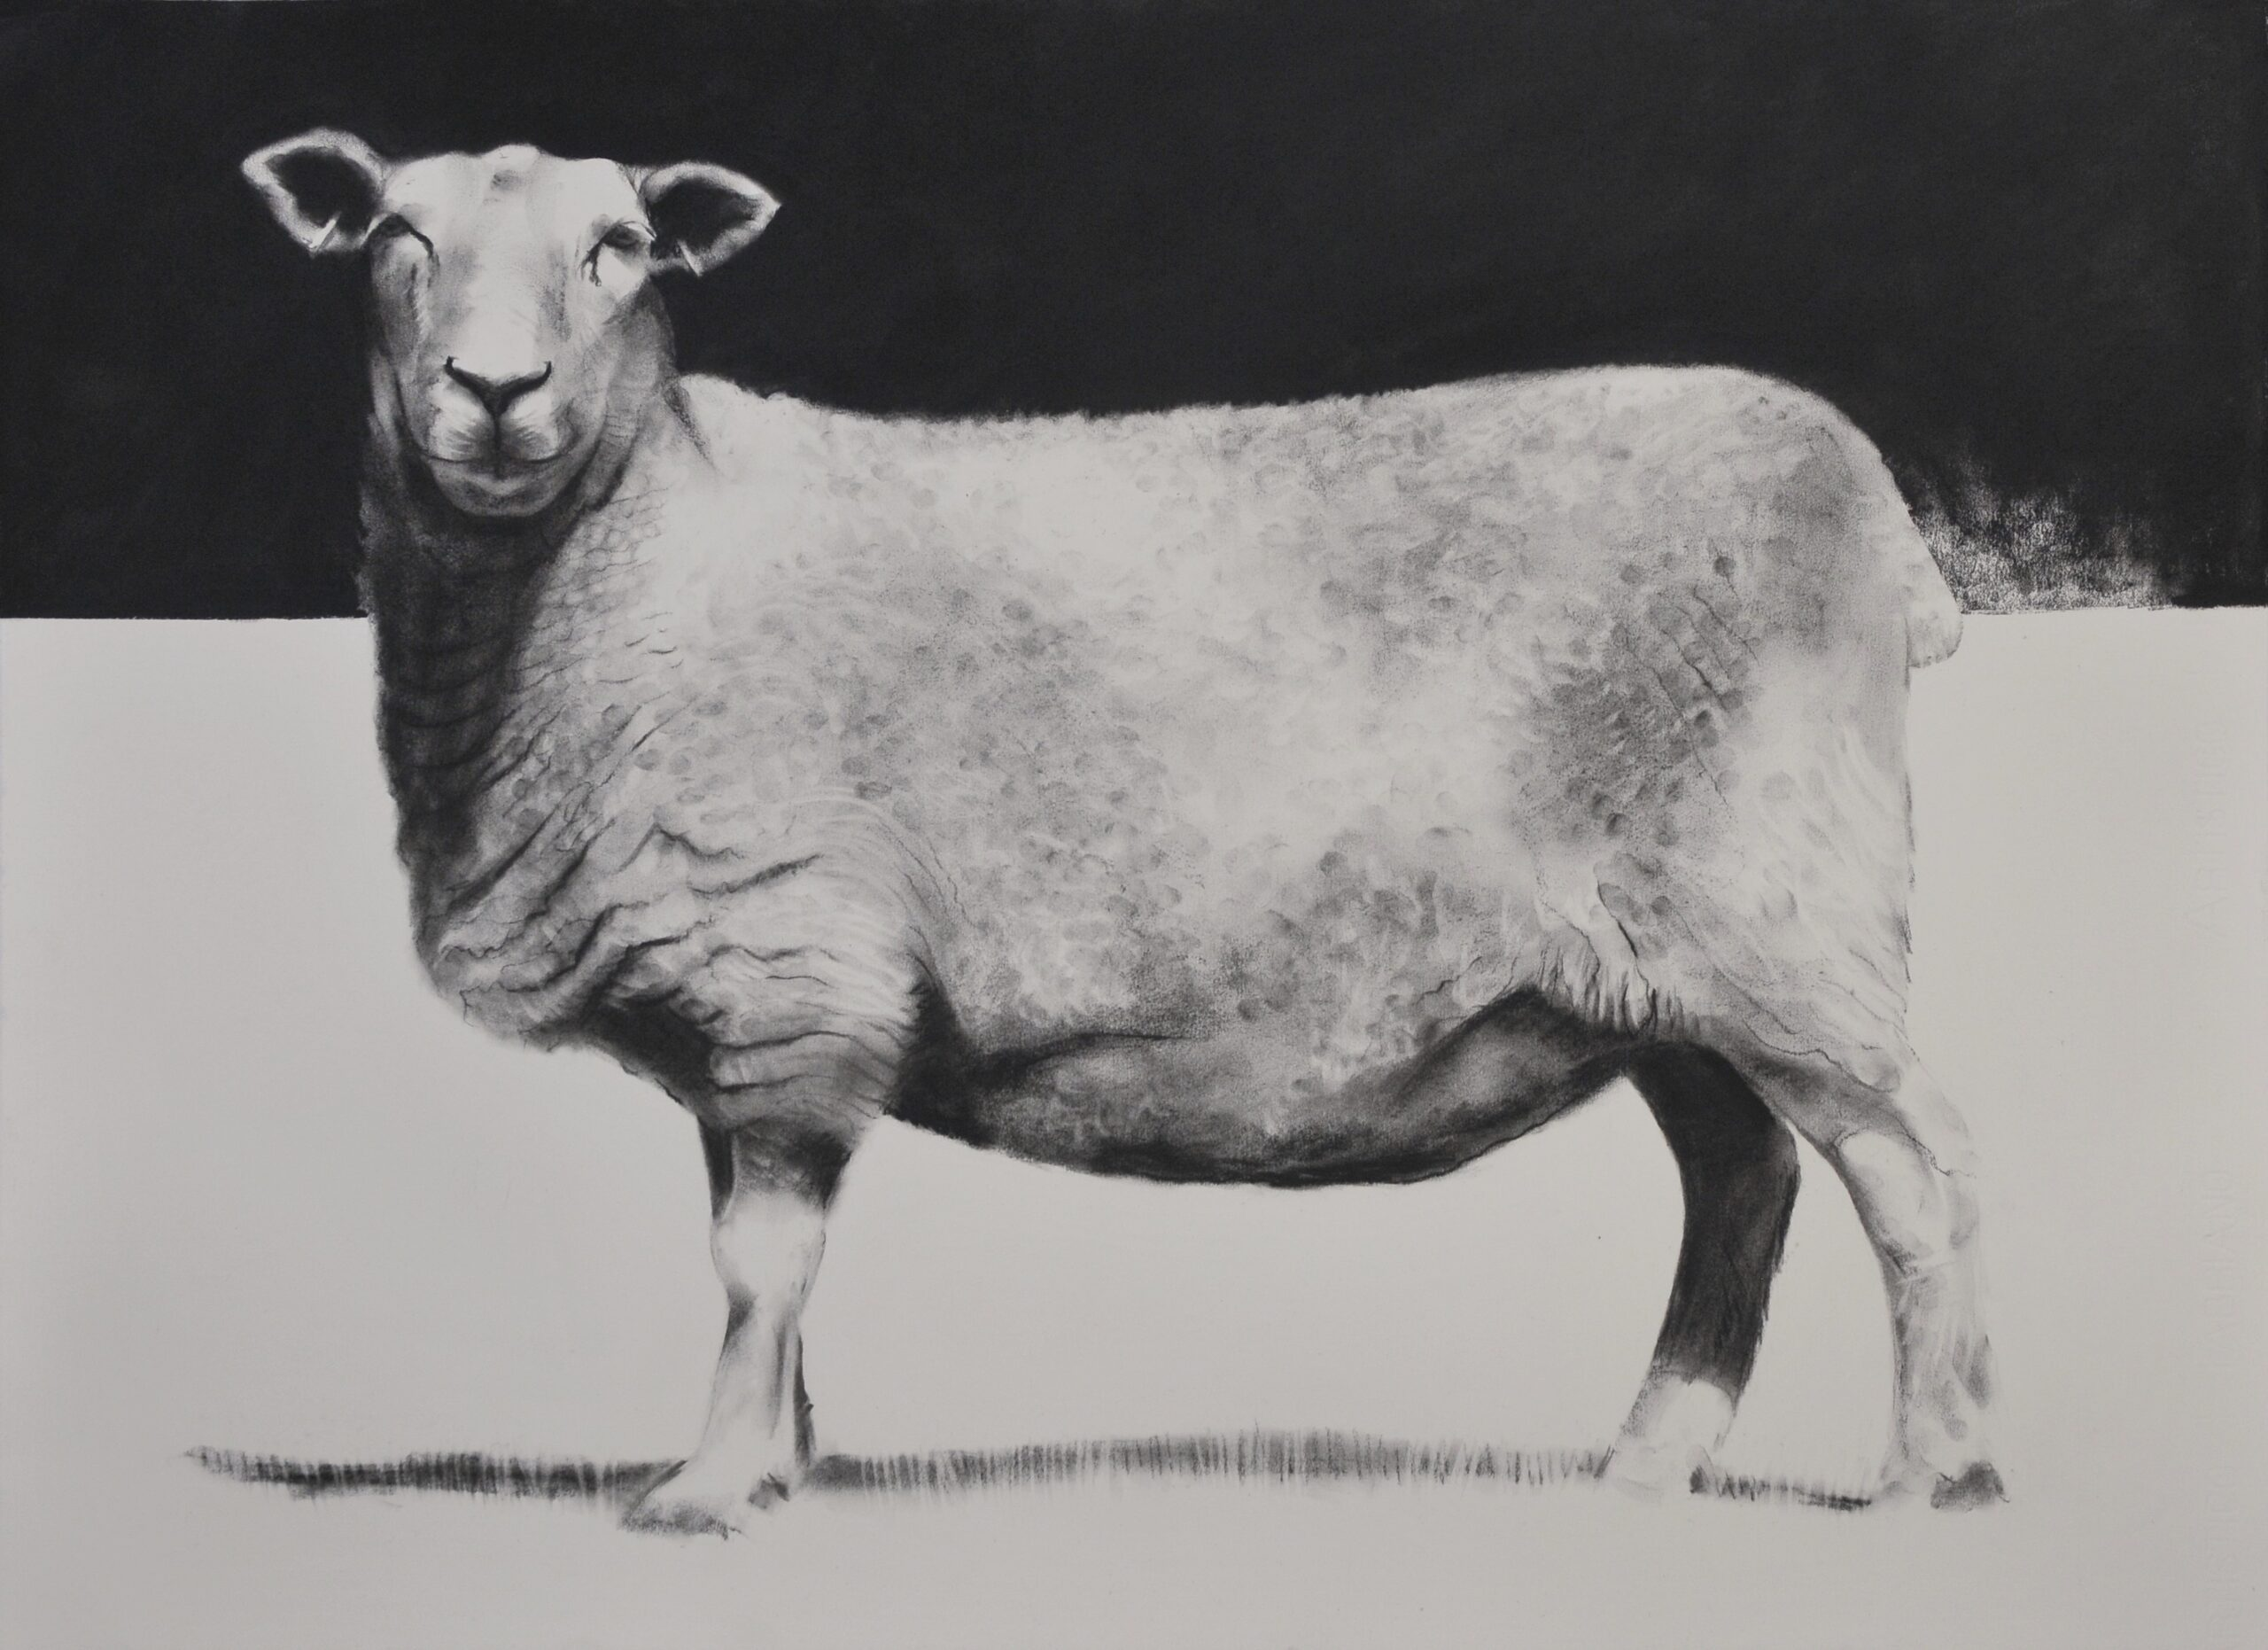 Charcoal drawing of a sheep side view